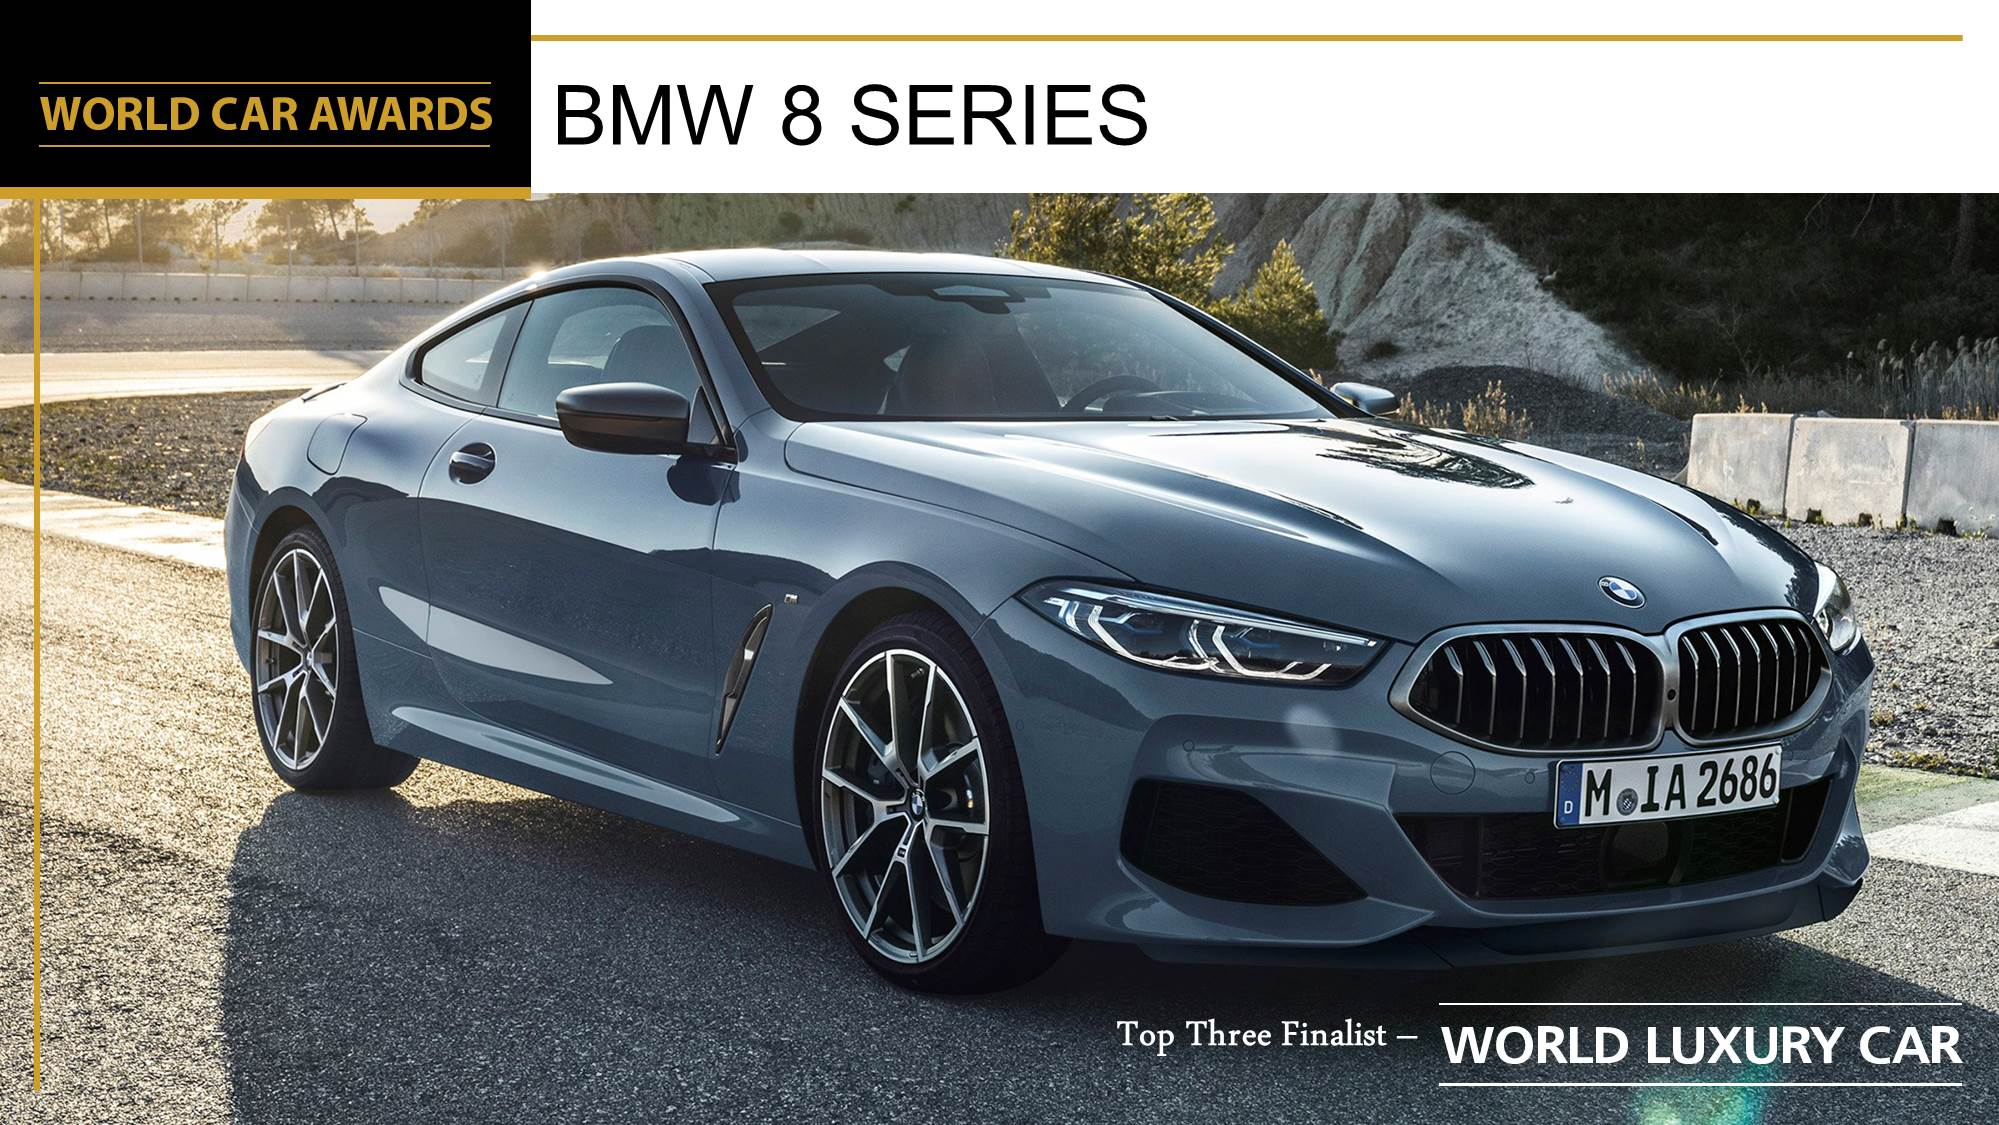 Bmw 7 Series Best Luxury Cars: BMW 8 Series On Flipboard